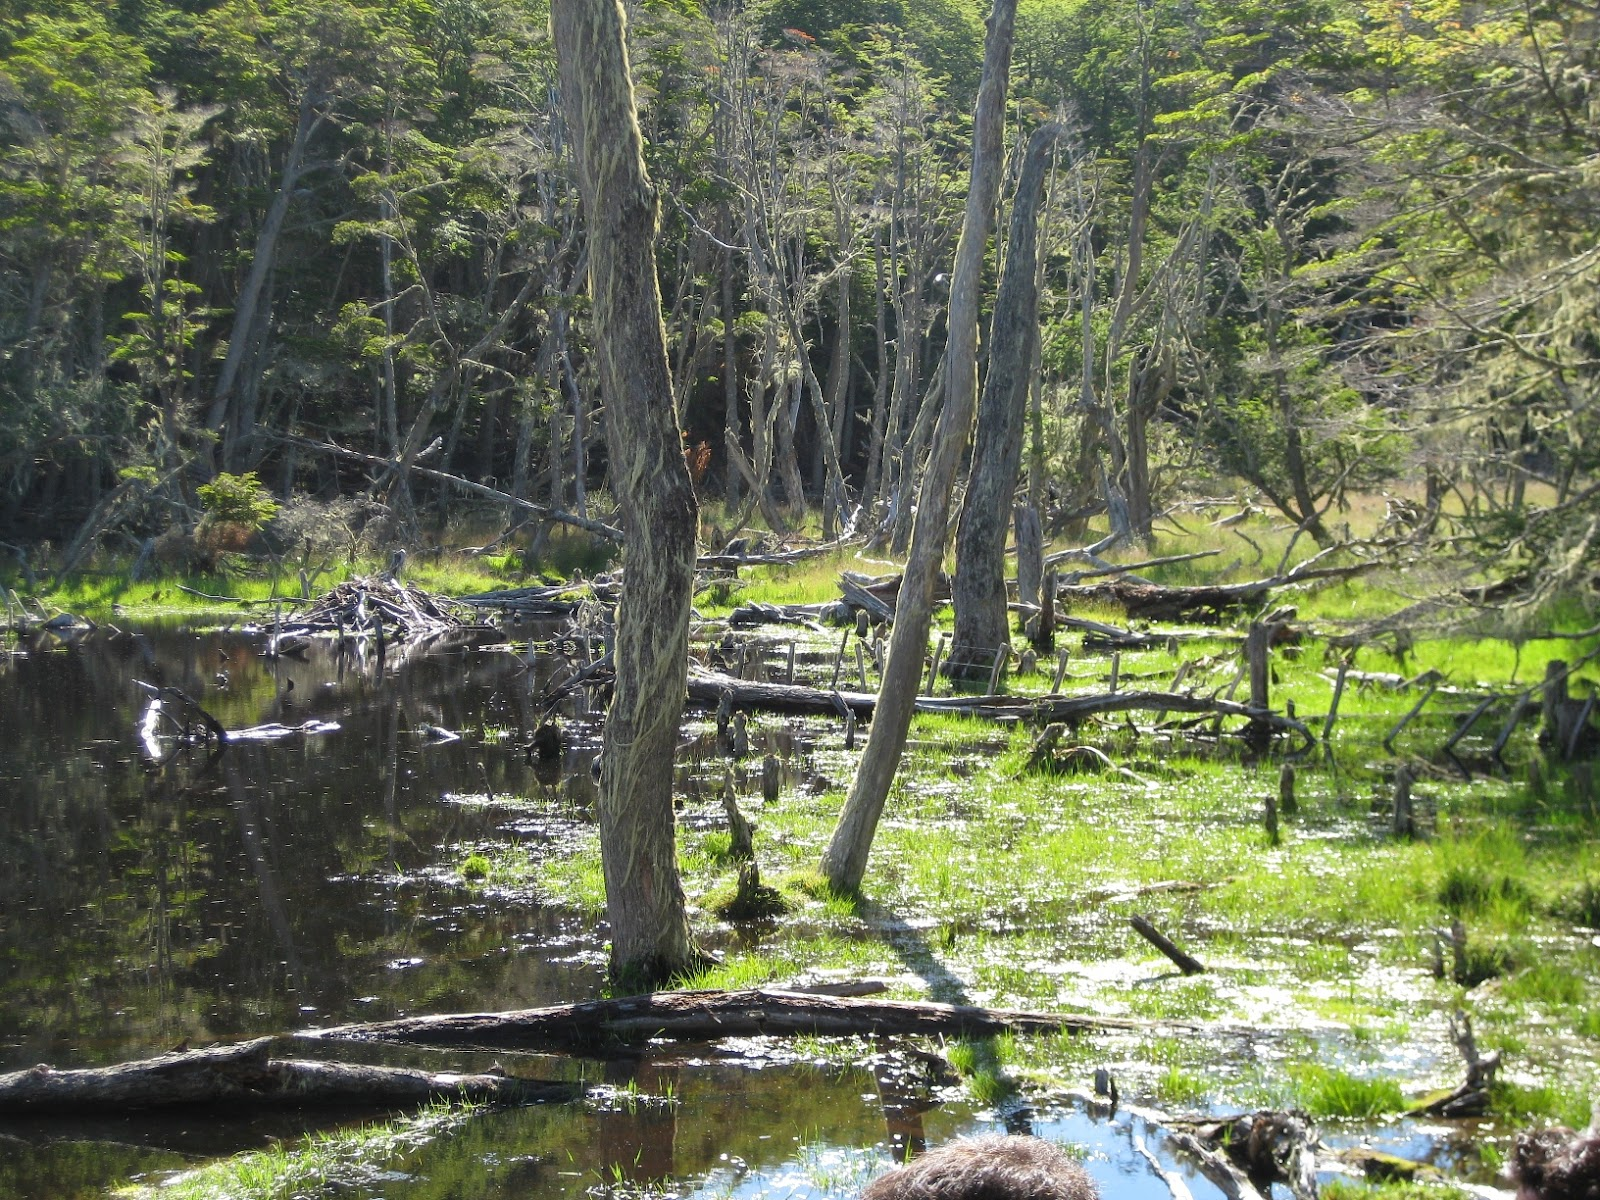 Beaver damage - flooded land, dead trees